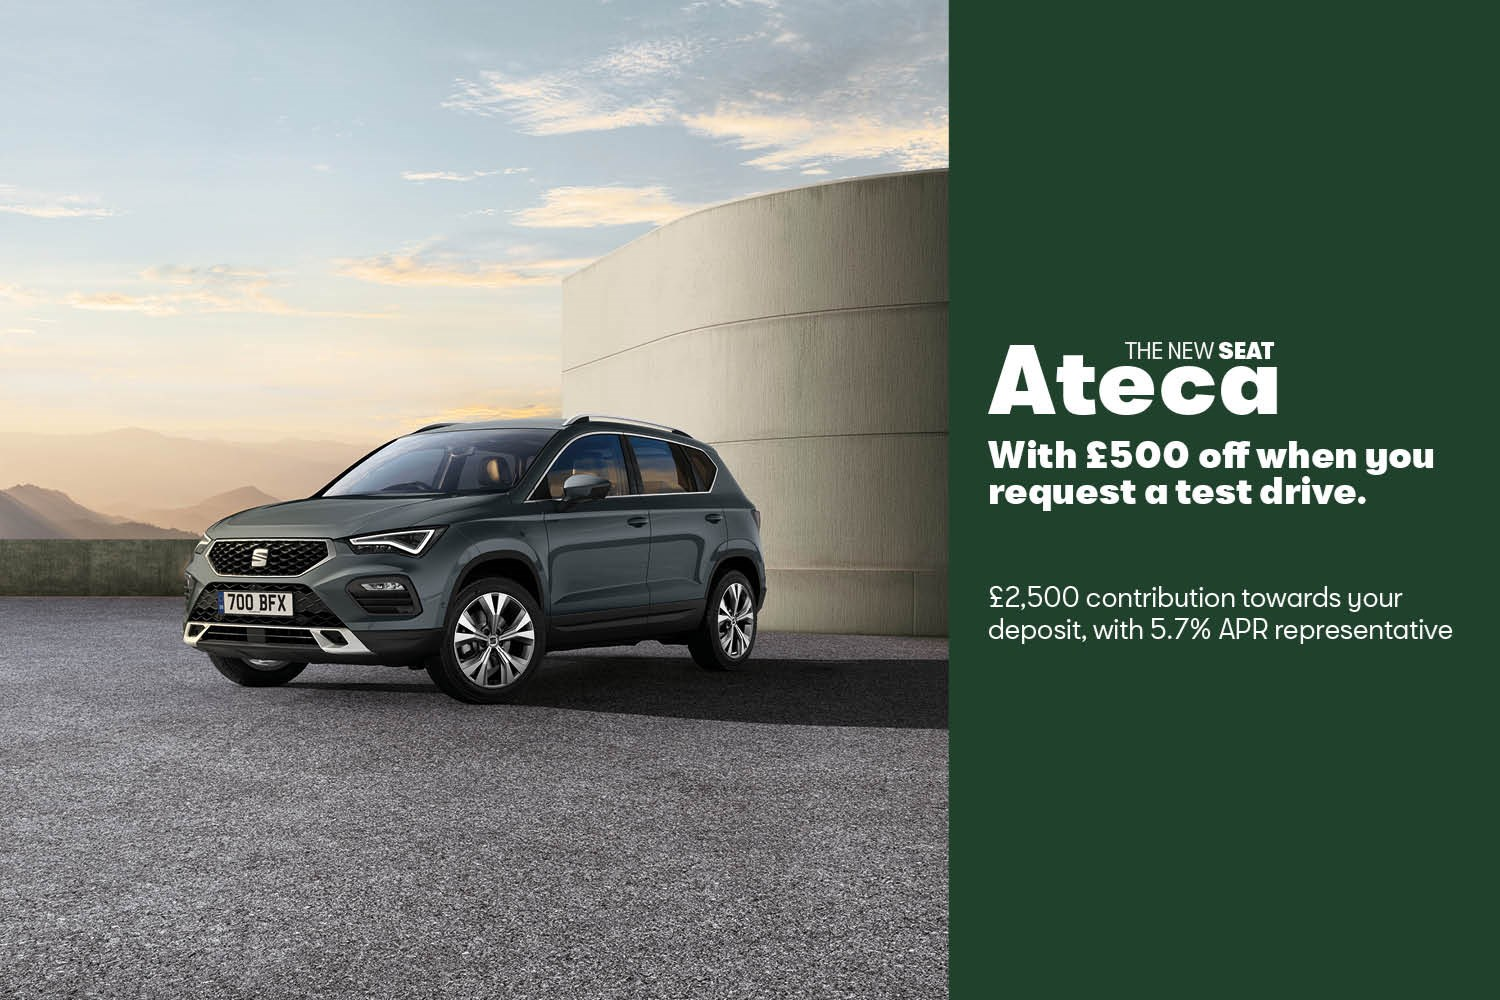 Seat ATECA offer banner £500 test drive saving, £2500 deposit contribution and 5.7% APR